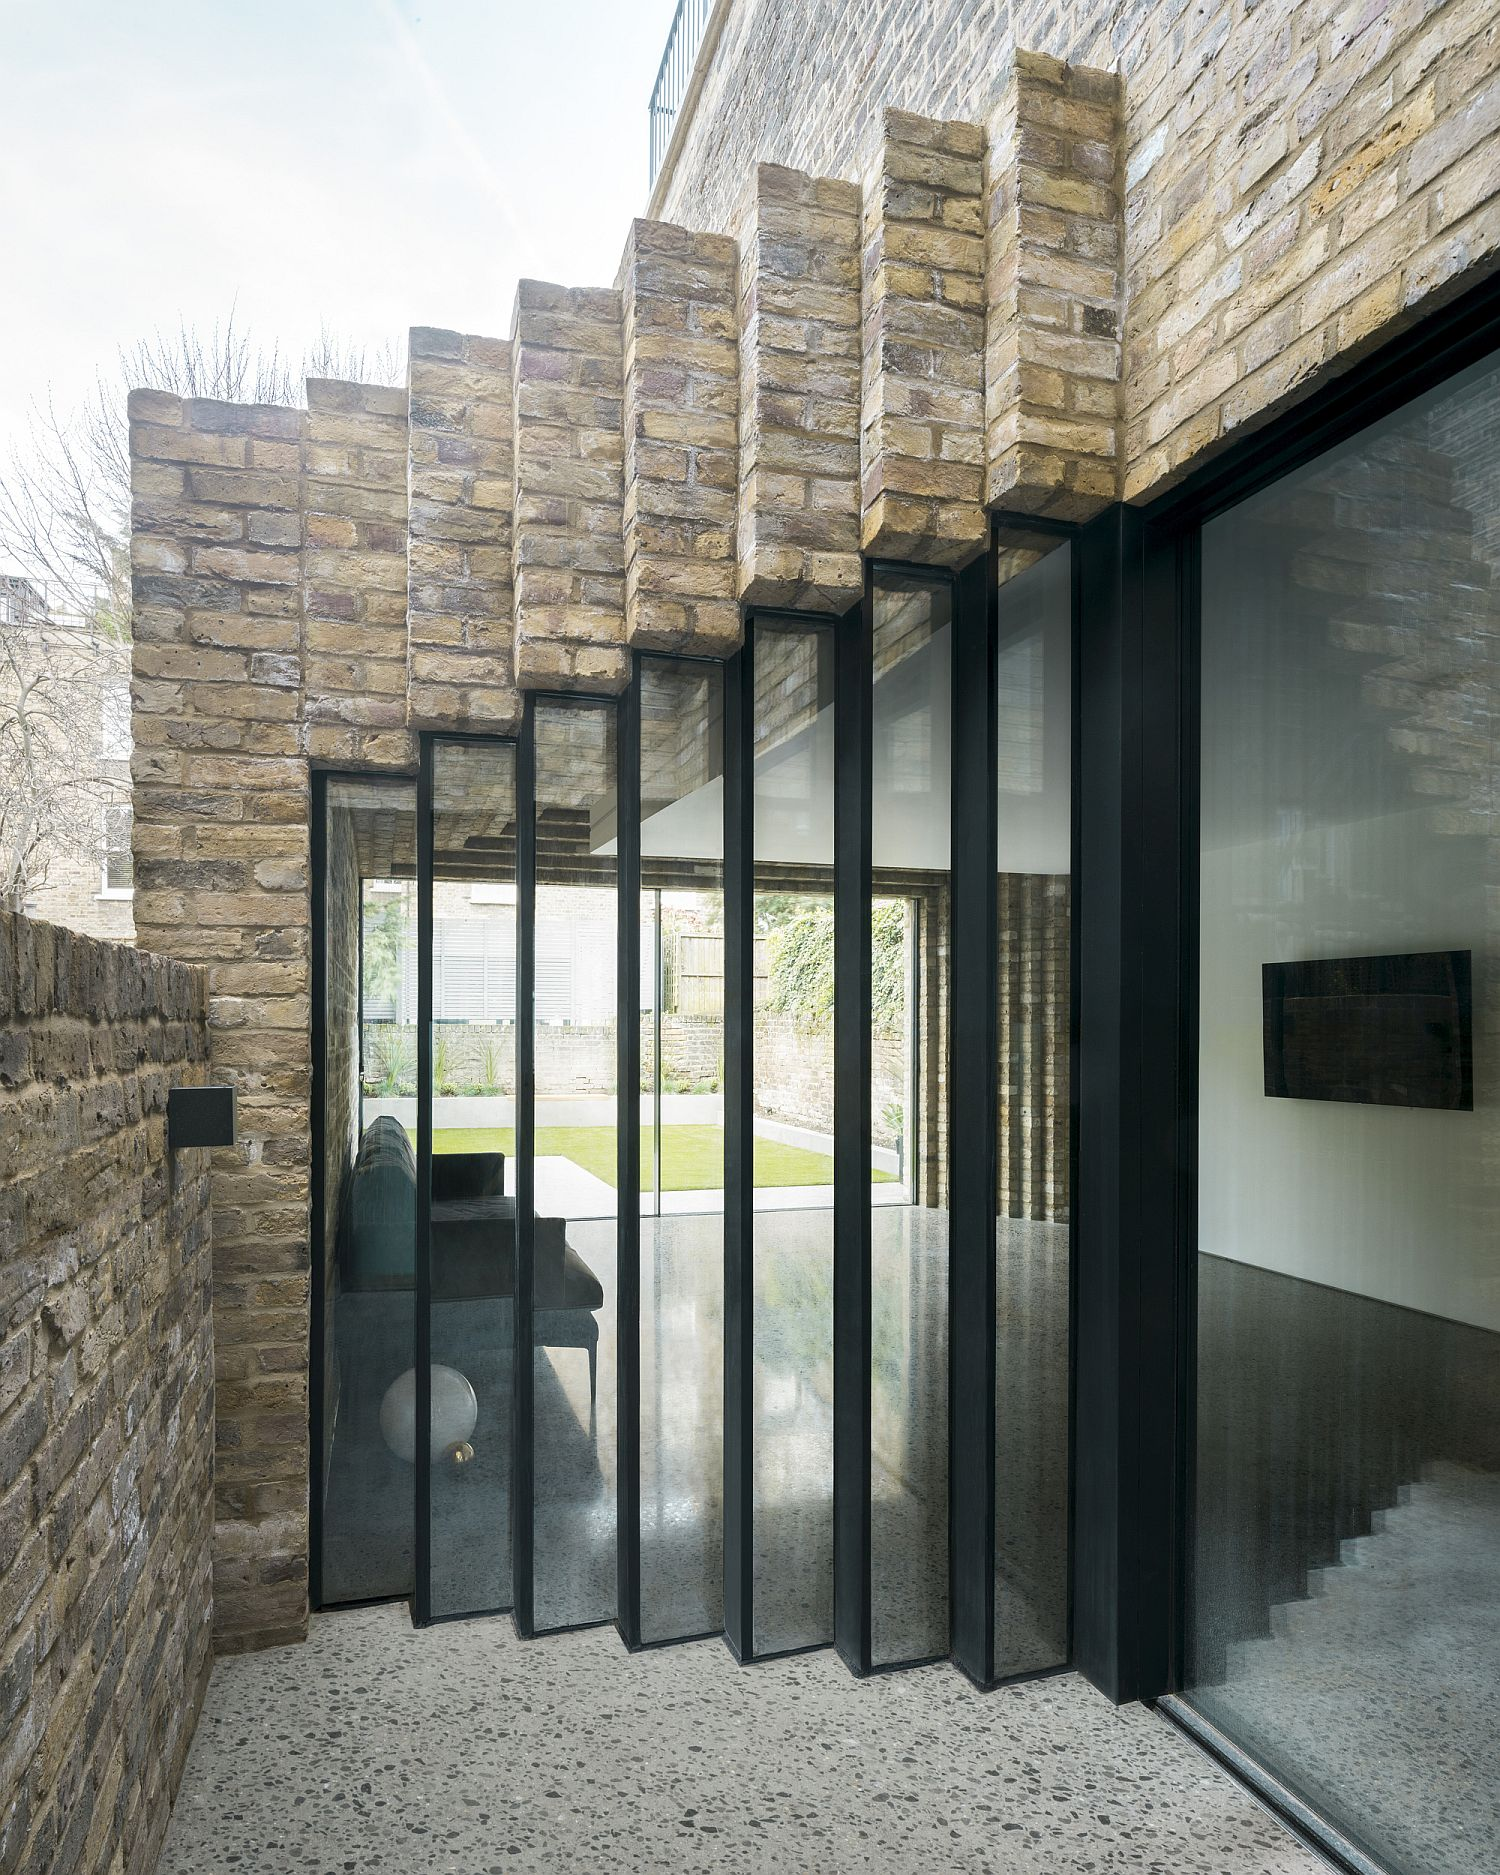 Smart staggered brick extension also brings in ample ventilation to the heritage home